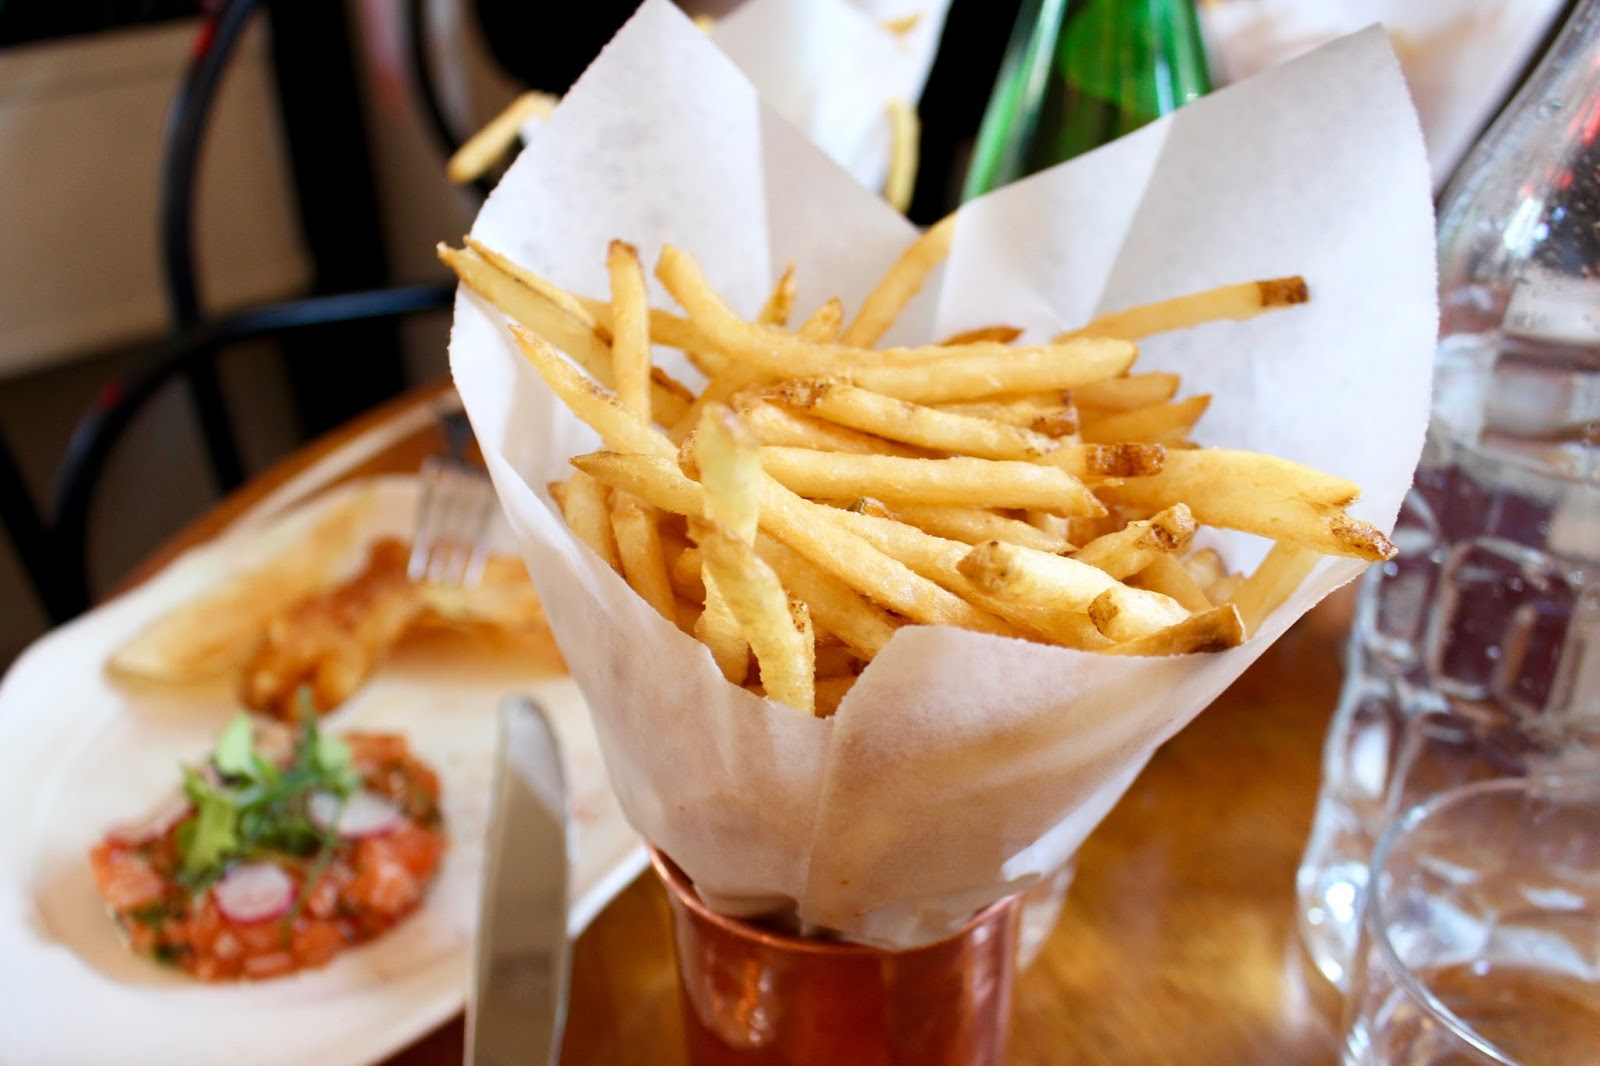 The Standard Grill fries | New York